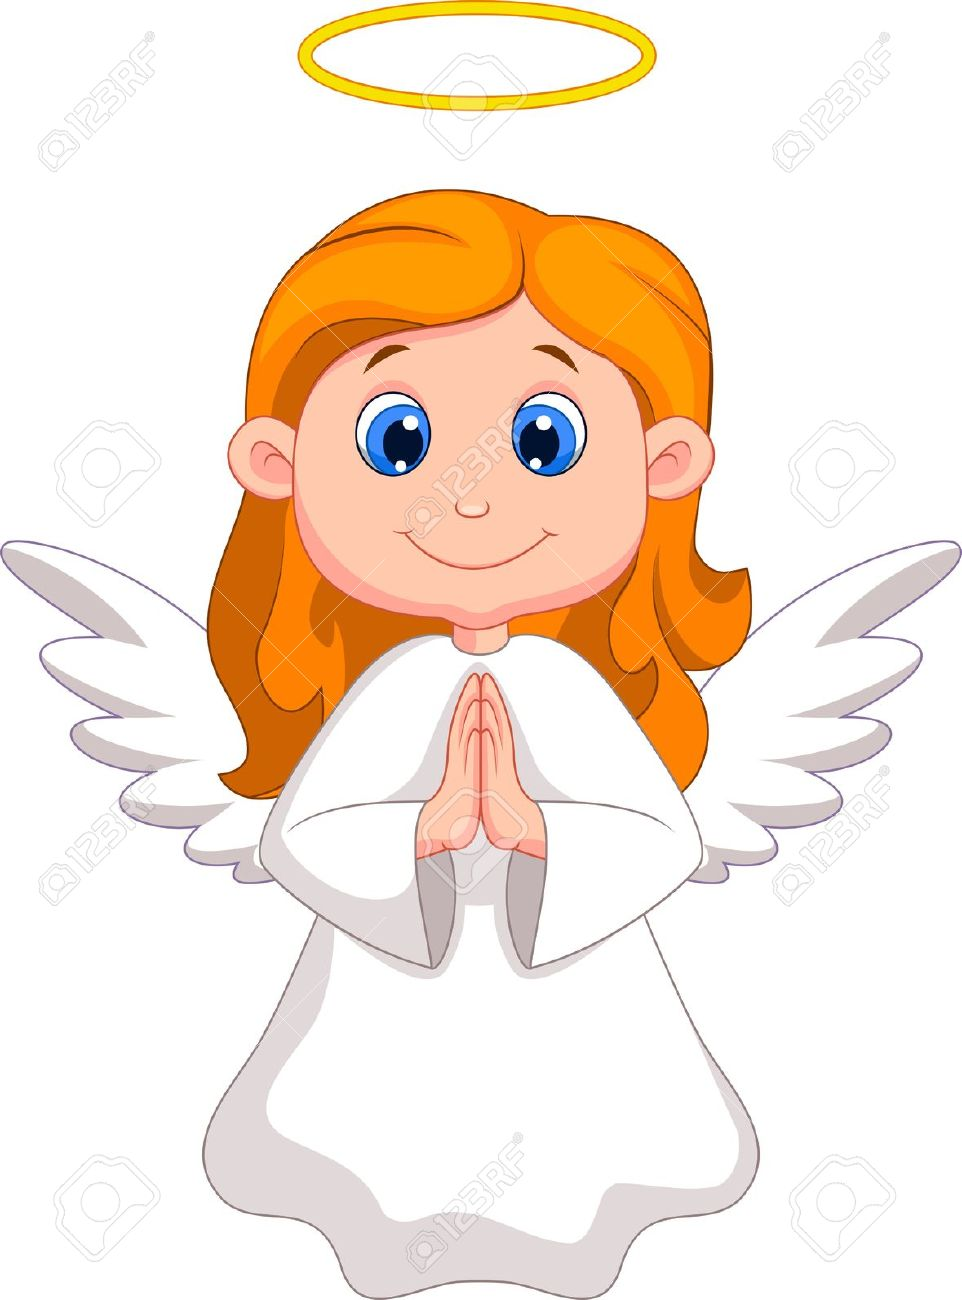 group of cute cartoon angels wallpapers